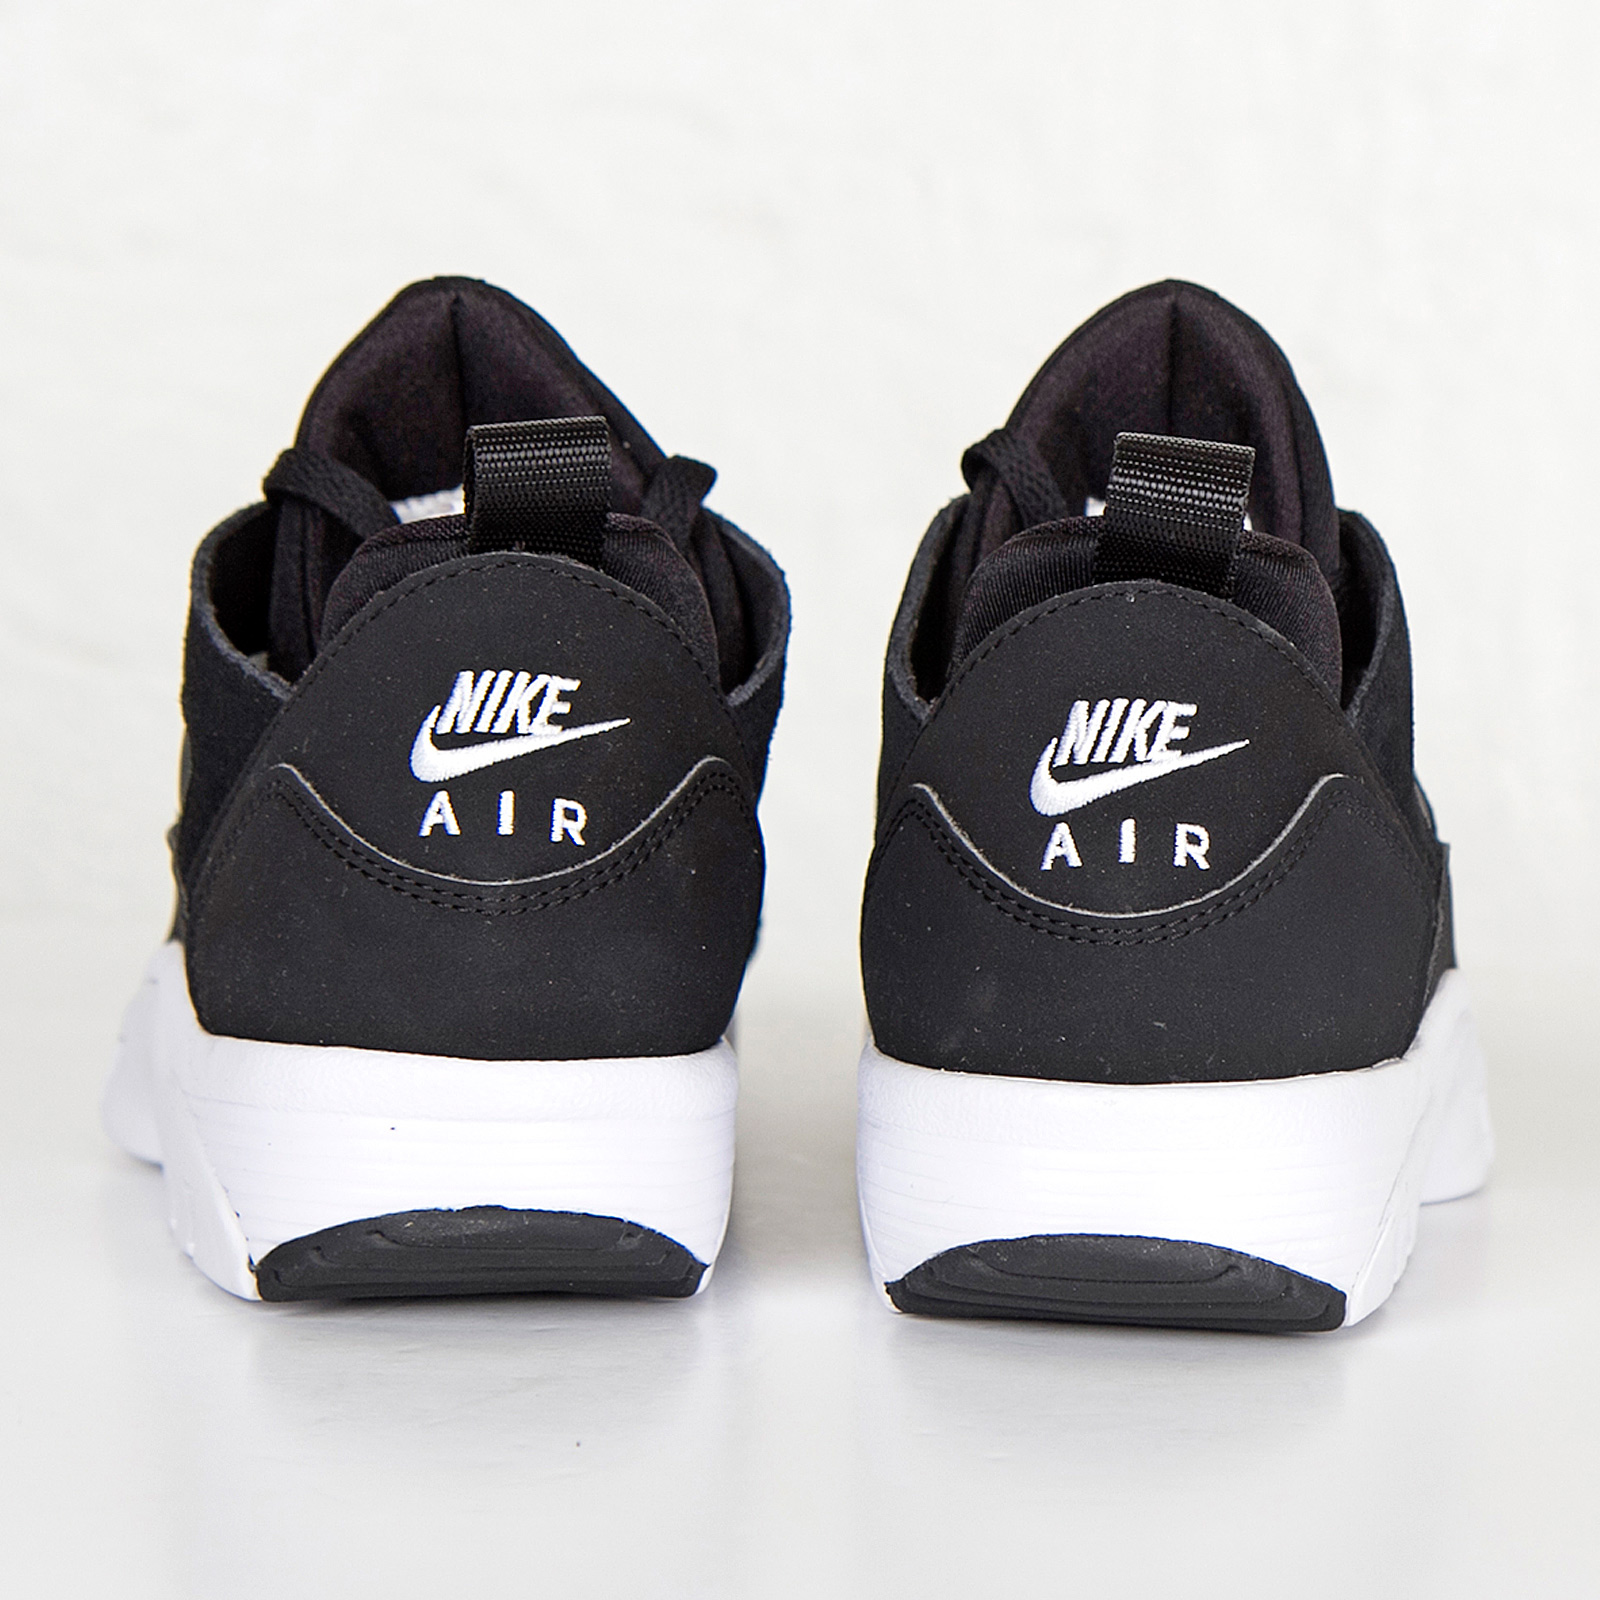 be18771ebb82d Nike Air Trainer Huarache Low - 749447-010 - Sneakersnstuff ...